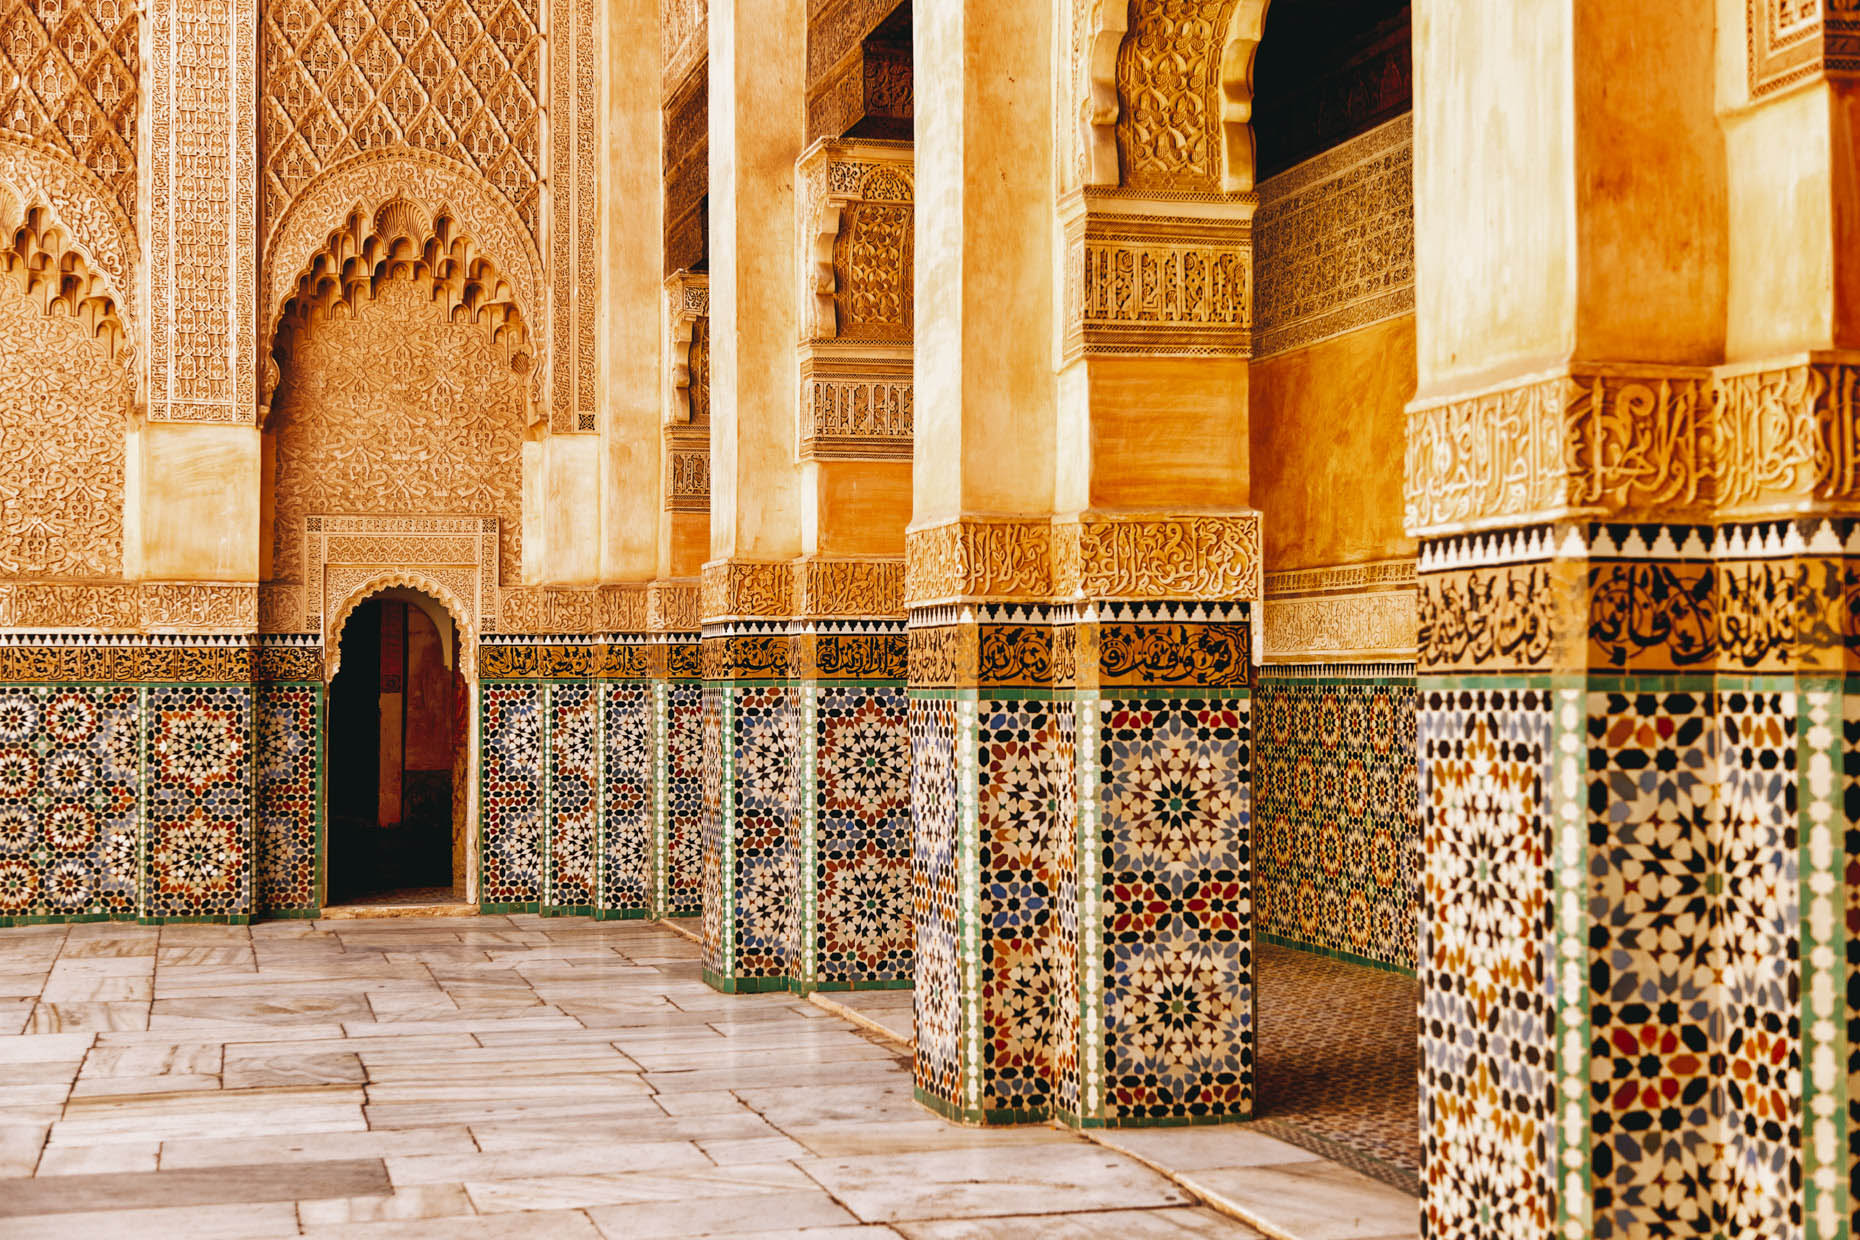 Colorfuly tiled Ben Youssef Madrasa college courtyard in Marrakesh Morocco